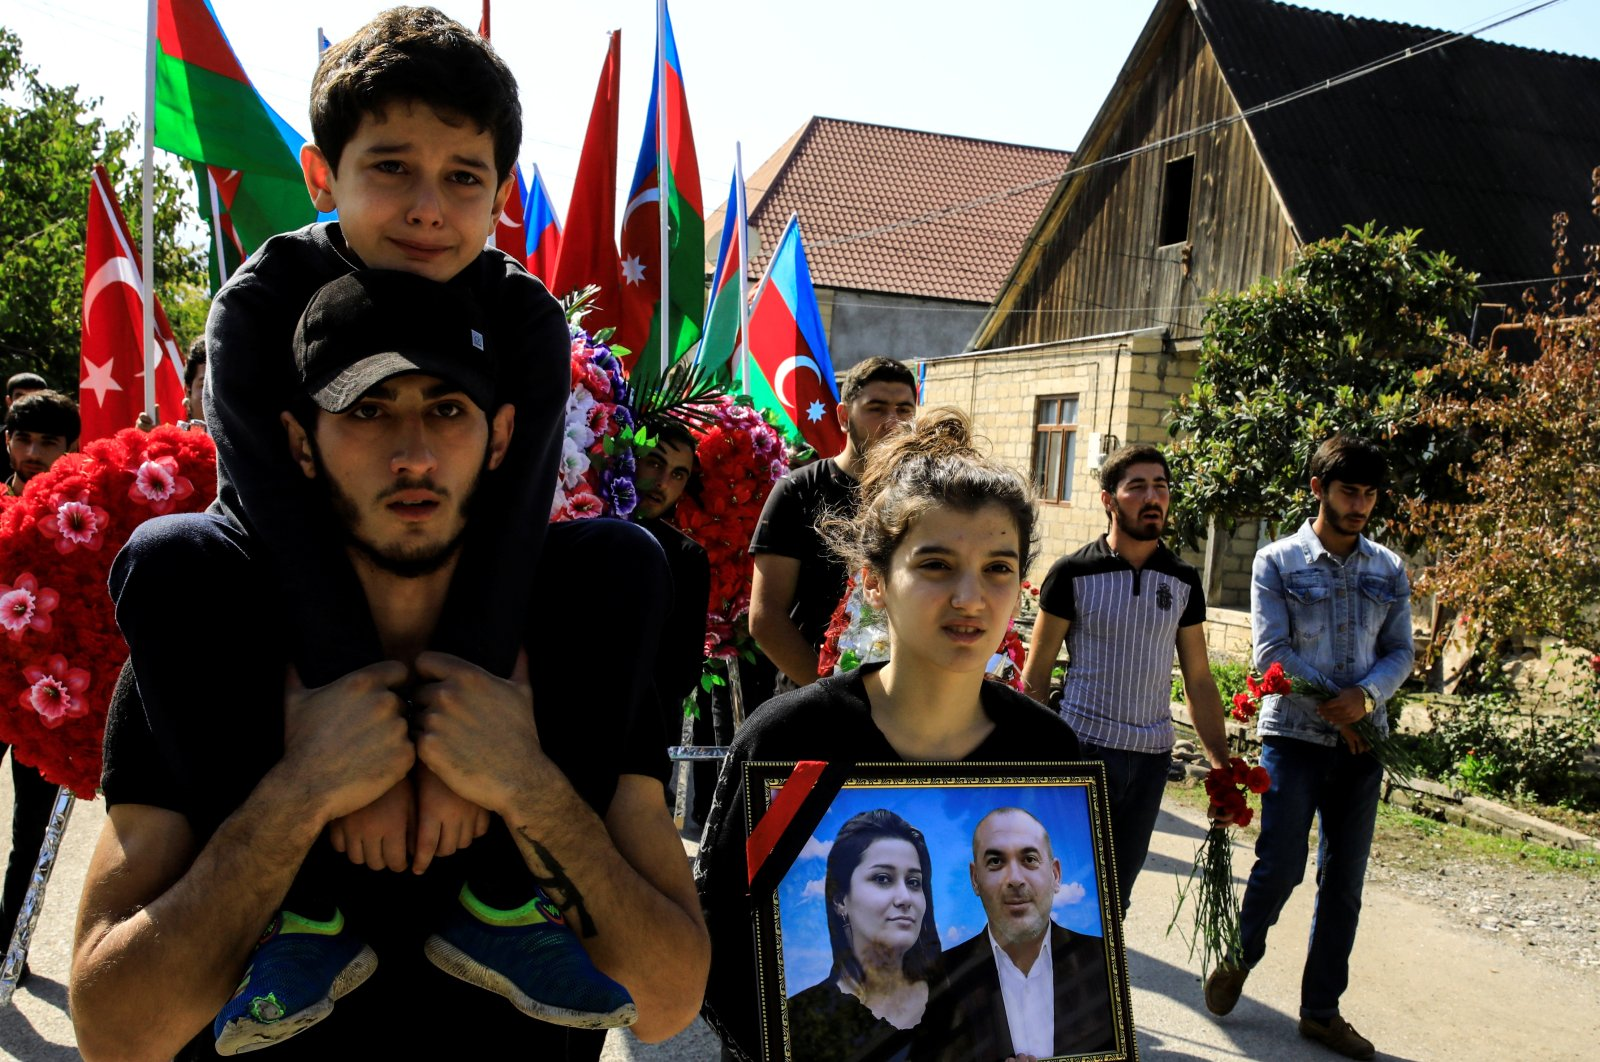 Sevil Aliyeva carries the portraits of her parents Anar Aliyev and Nurcin Aliyeva who were killed in Ganja attack as her brother Huseyin Aliyev cries on the shoulders of a relative during their funeral ceremony in the city of Shamkir, Azerbaijan, Oct. 12, 2020. (REUTERS)